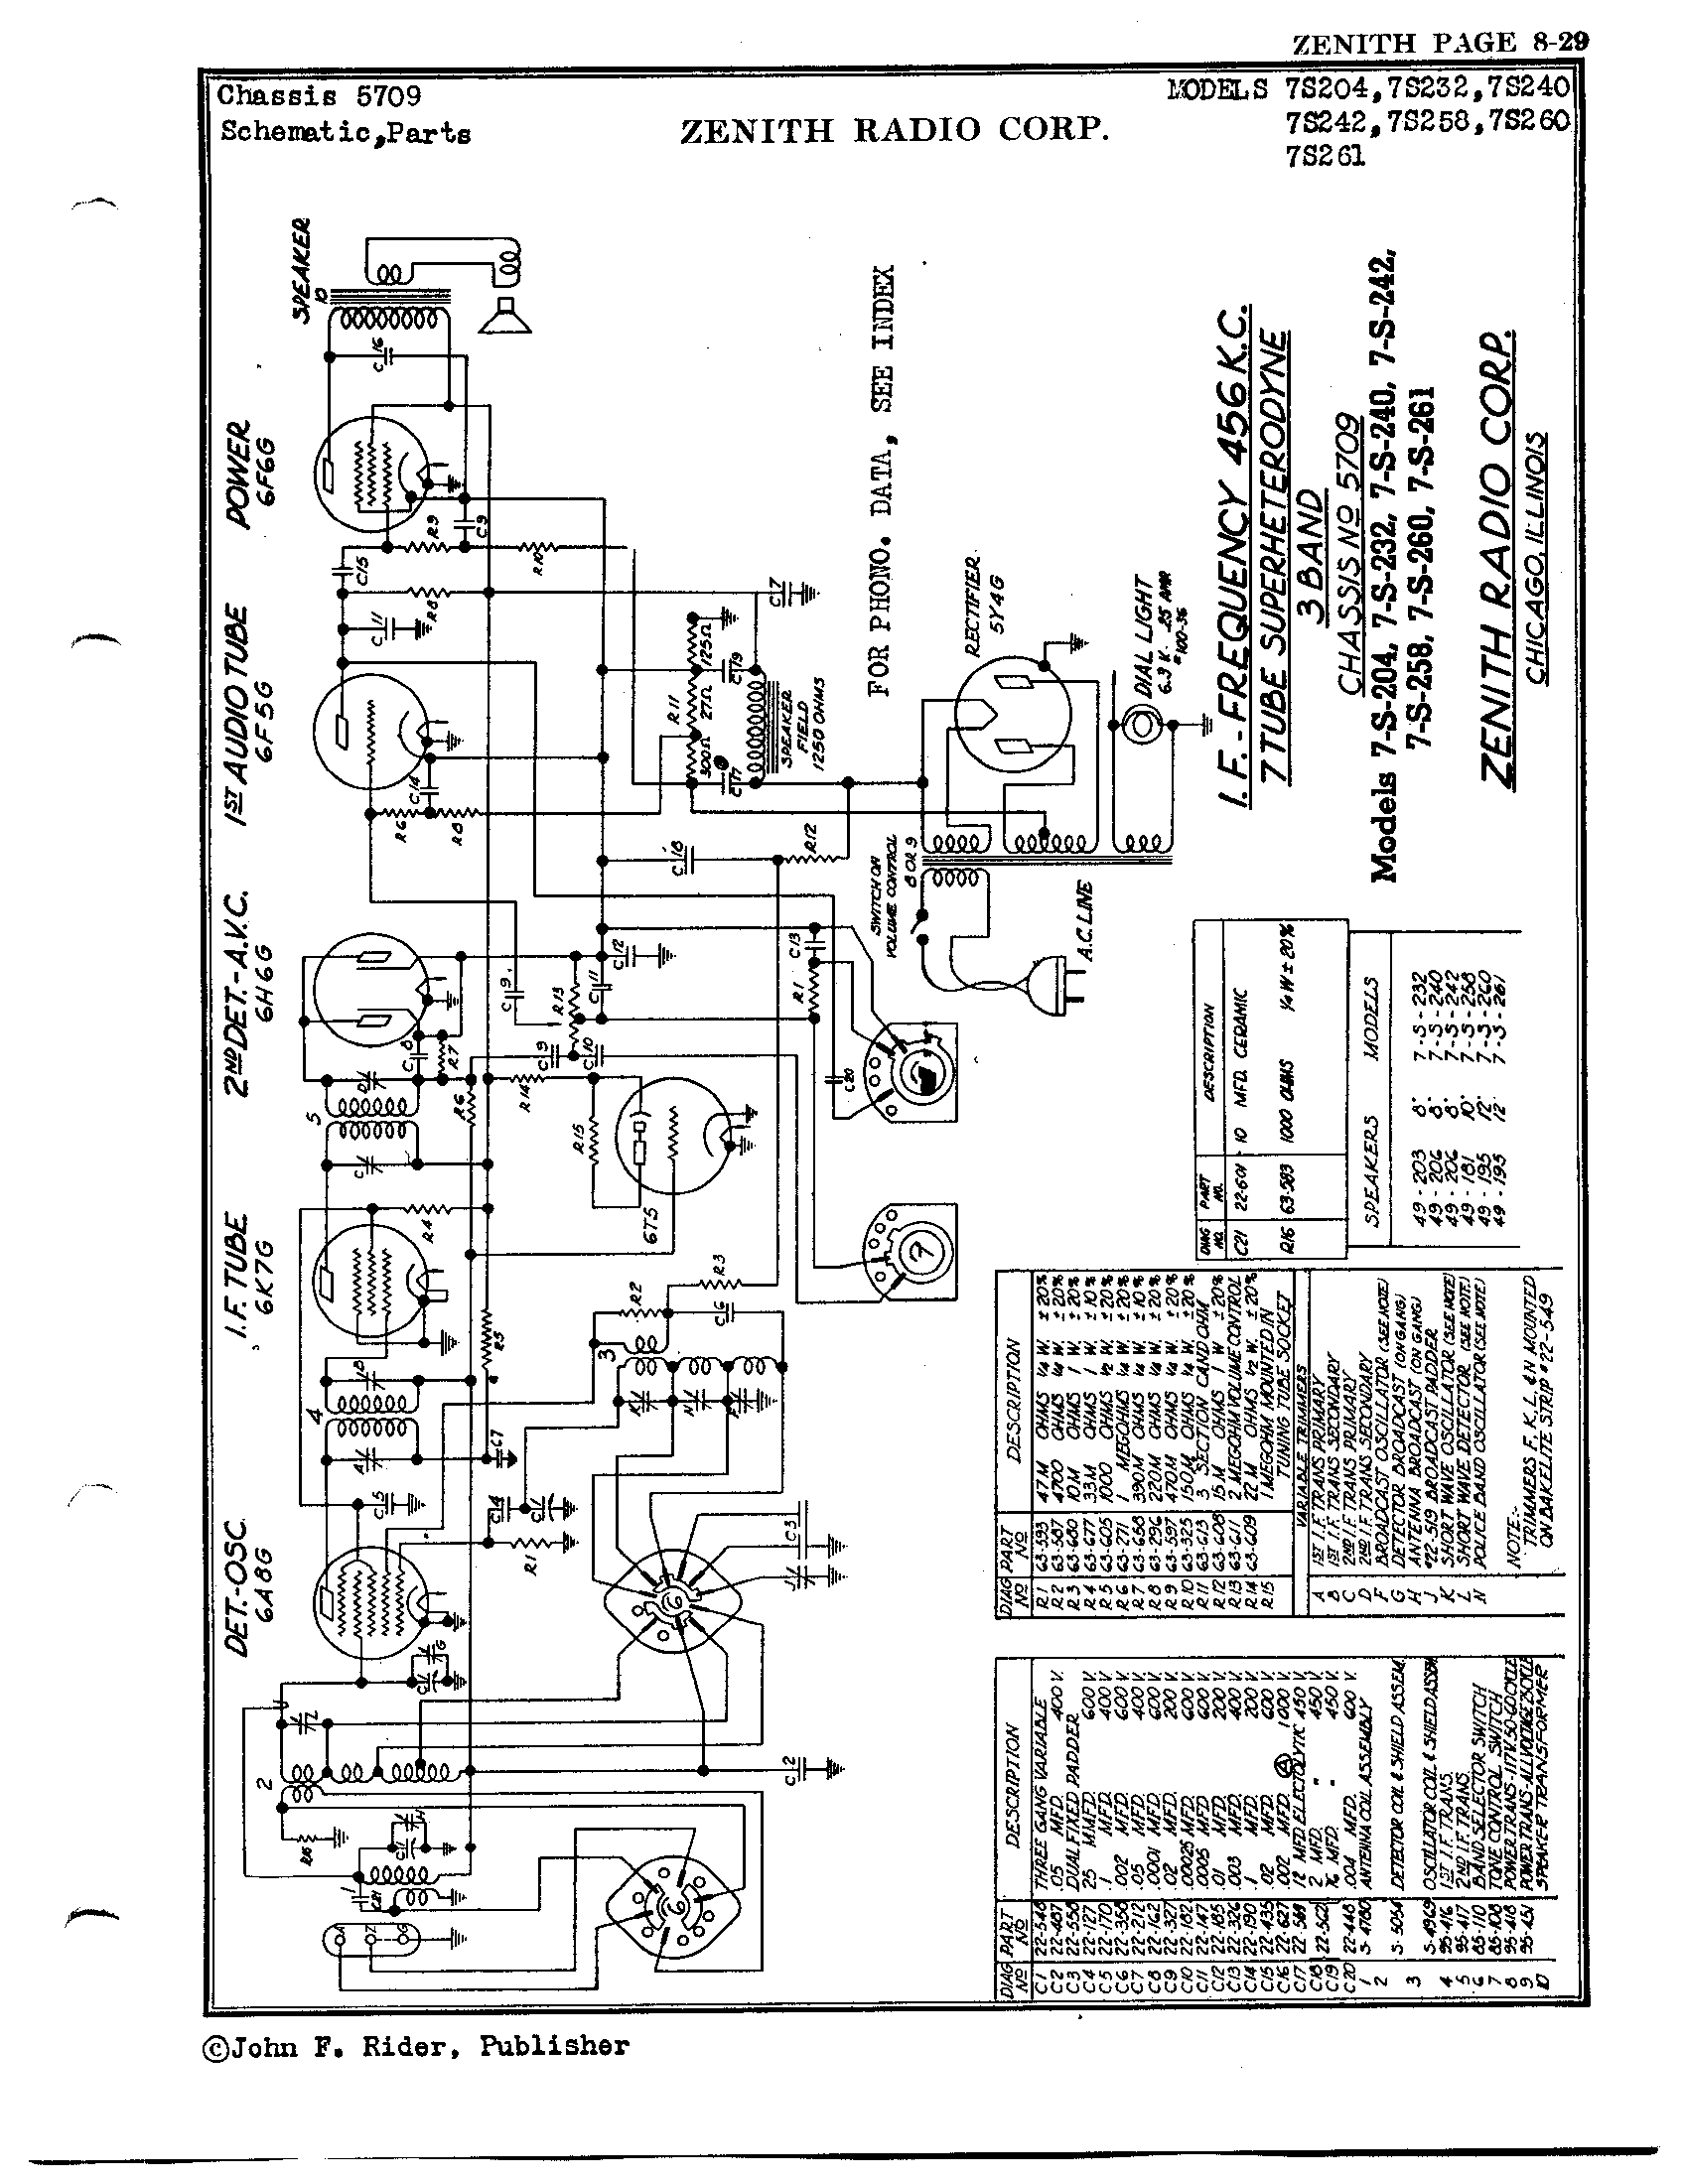 Zenith Radio Corp 7s258 Antique Electronic Supply. Schematic Pages. Wiring. Zenith Tube Radio Chasis Schematics At Scoala.co